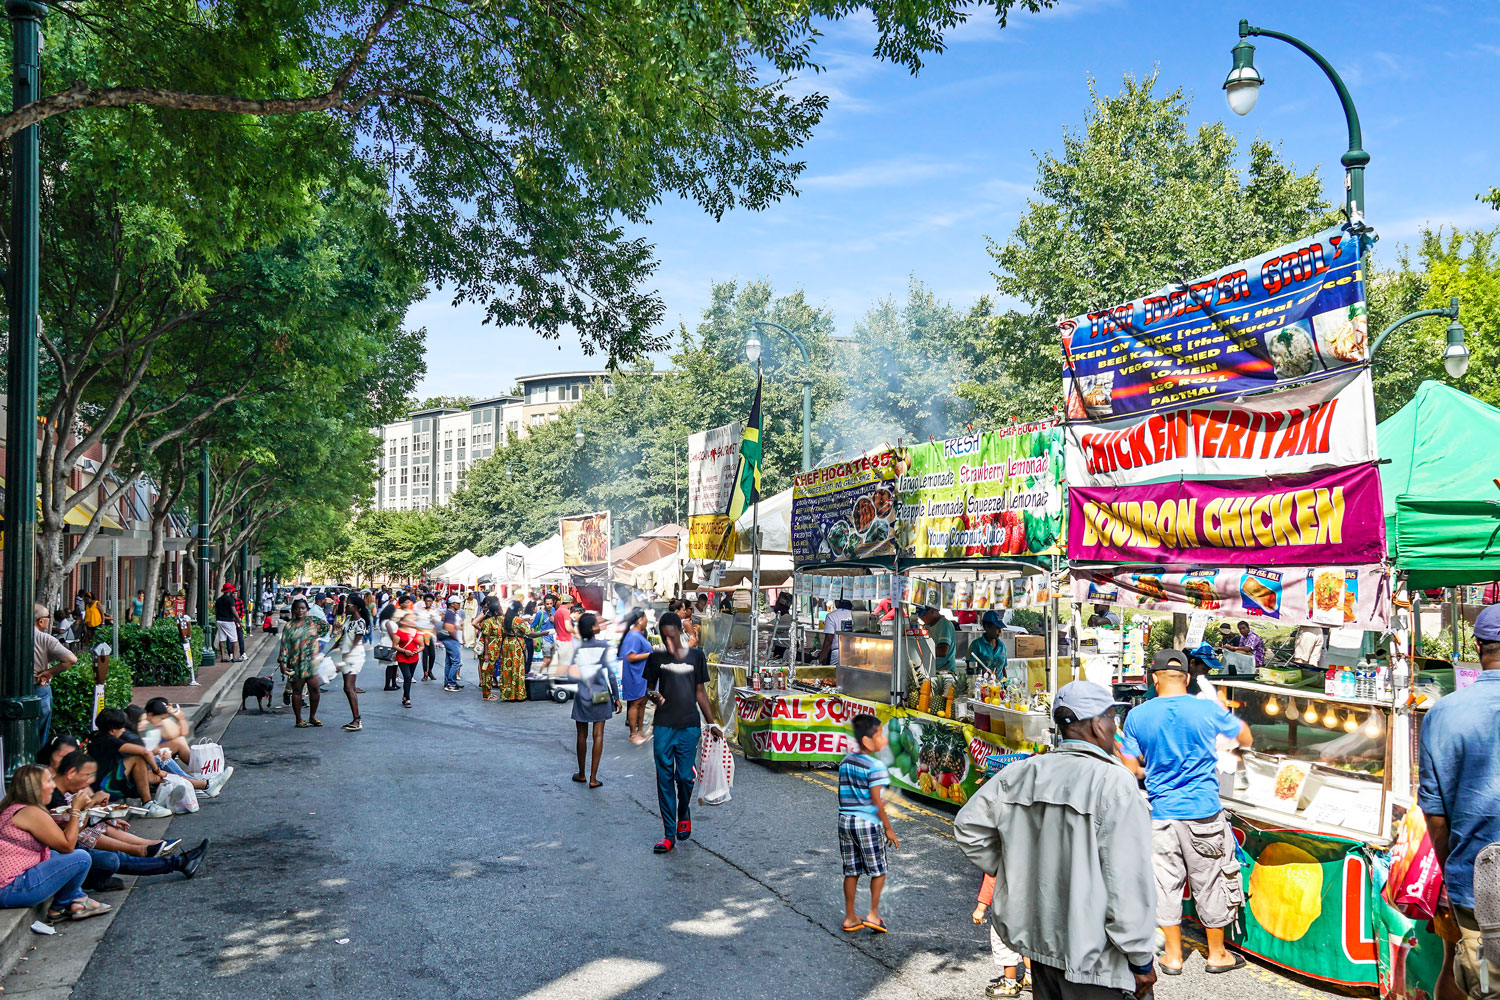 8 minutes to street fairs in Downtown Silver Spring, MD